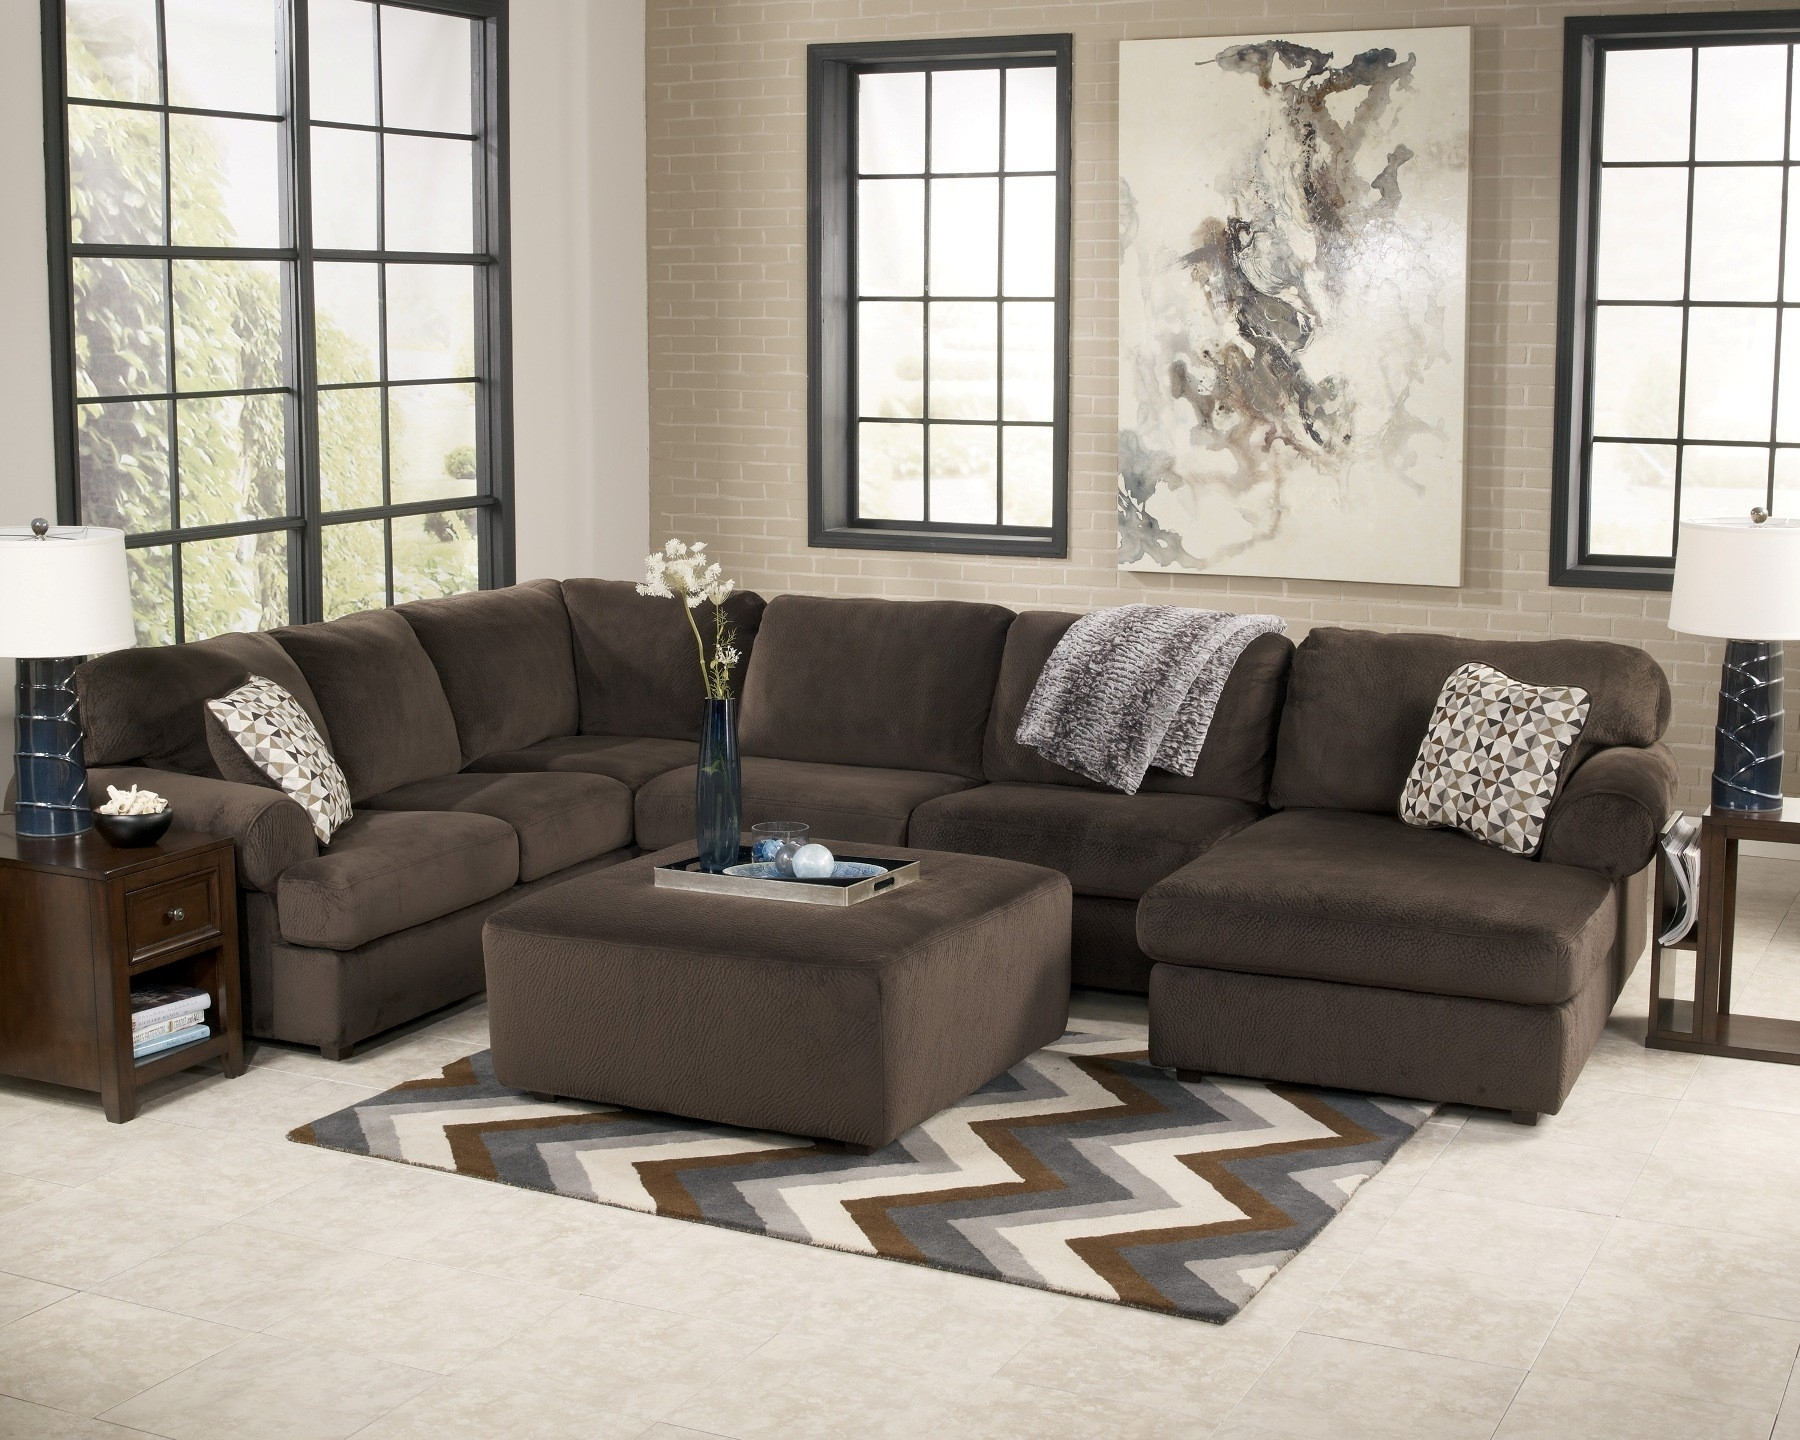 Jessa Place Collection Chocolate Sectional Sofa in Chocolate Sectional Sofas (Image 9 of 15)